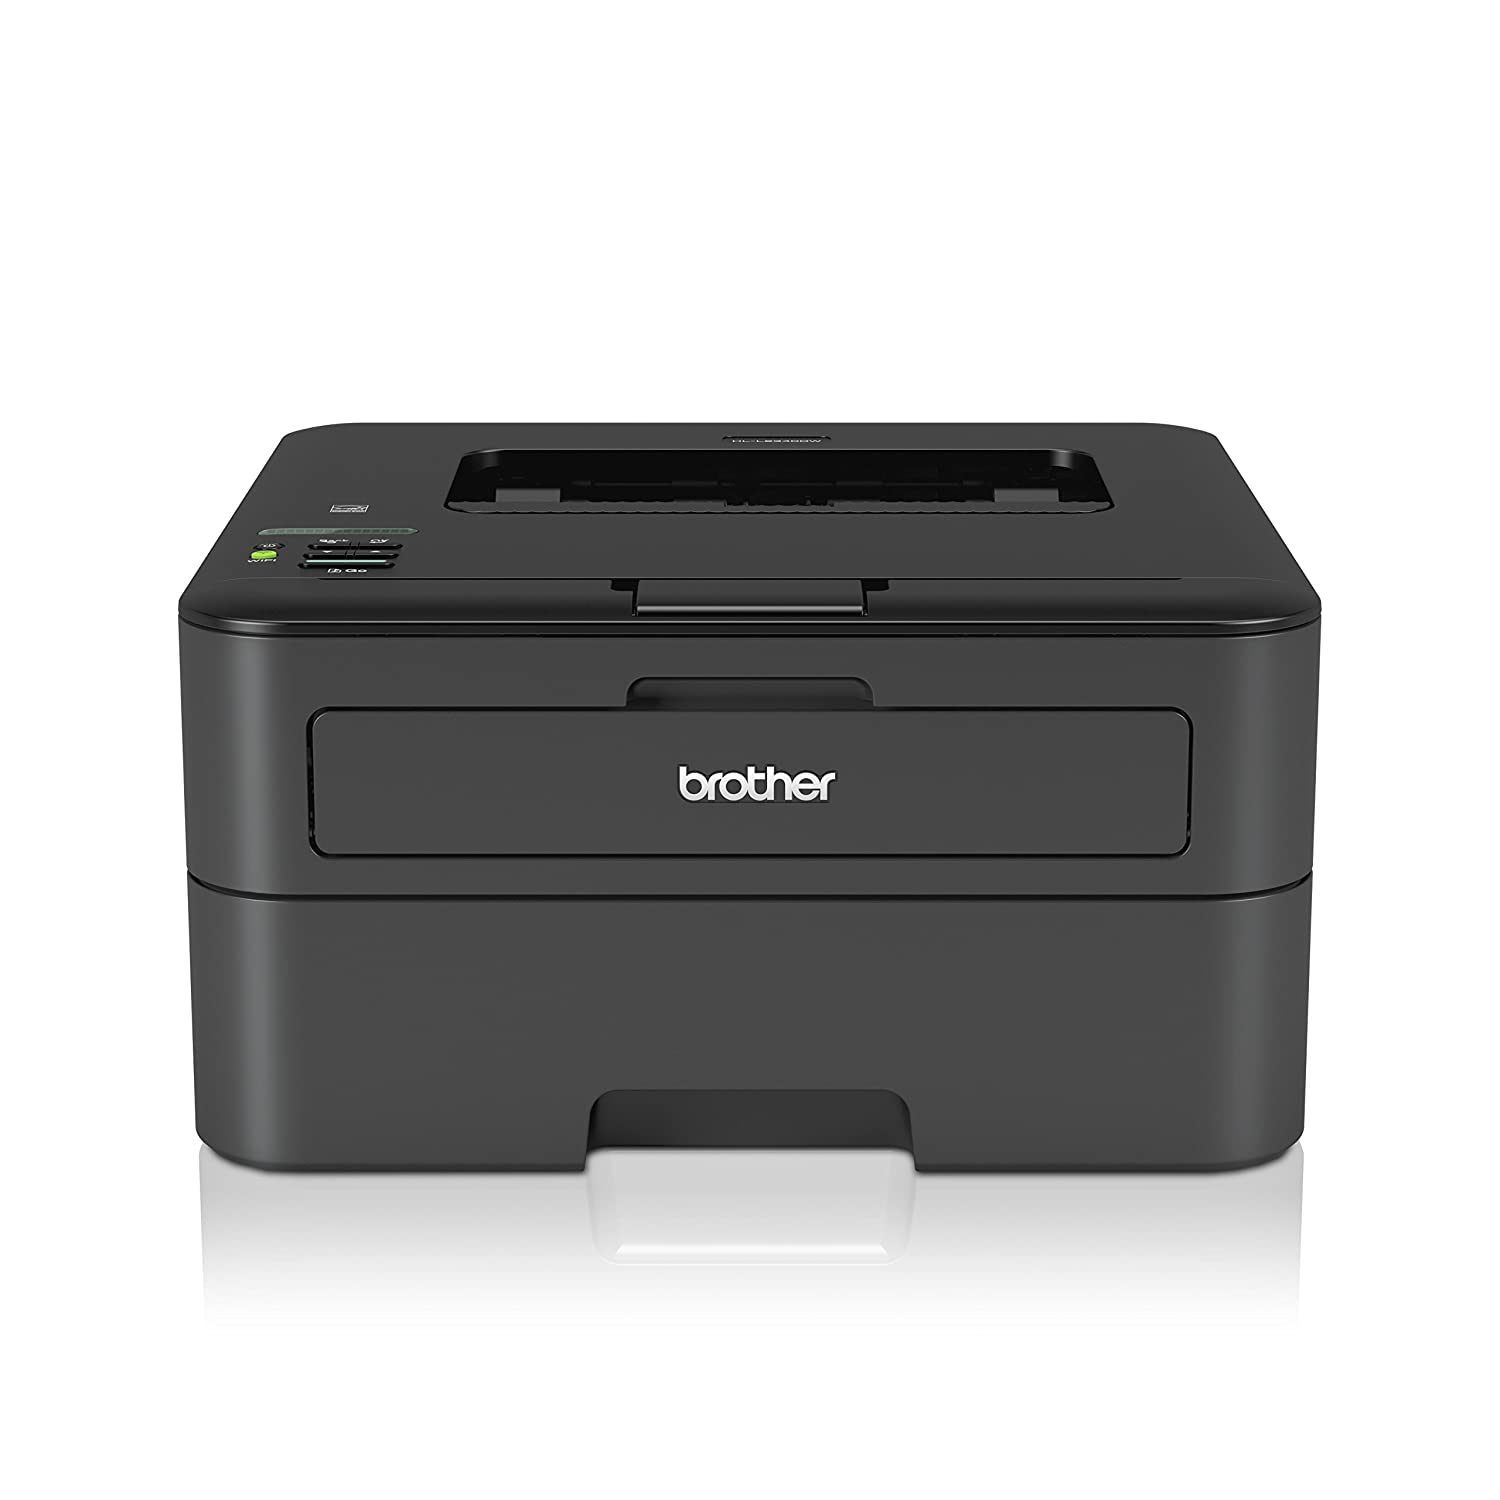 Brother HLLDW Impresora láser monocromo Wi Fi ppm doble cara color negro